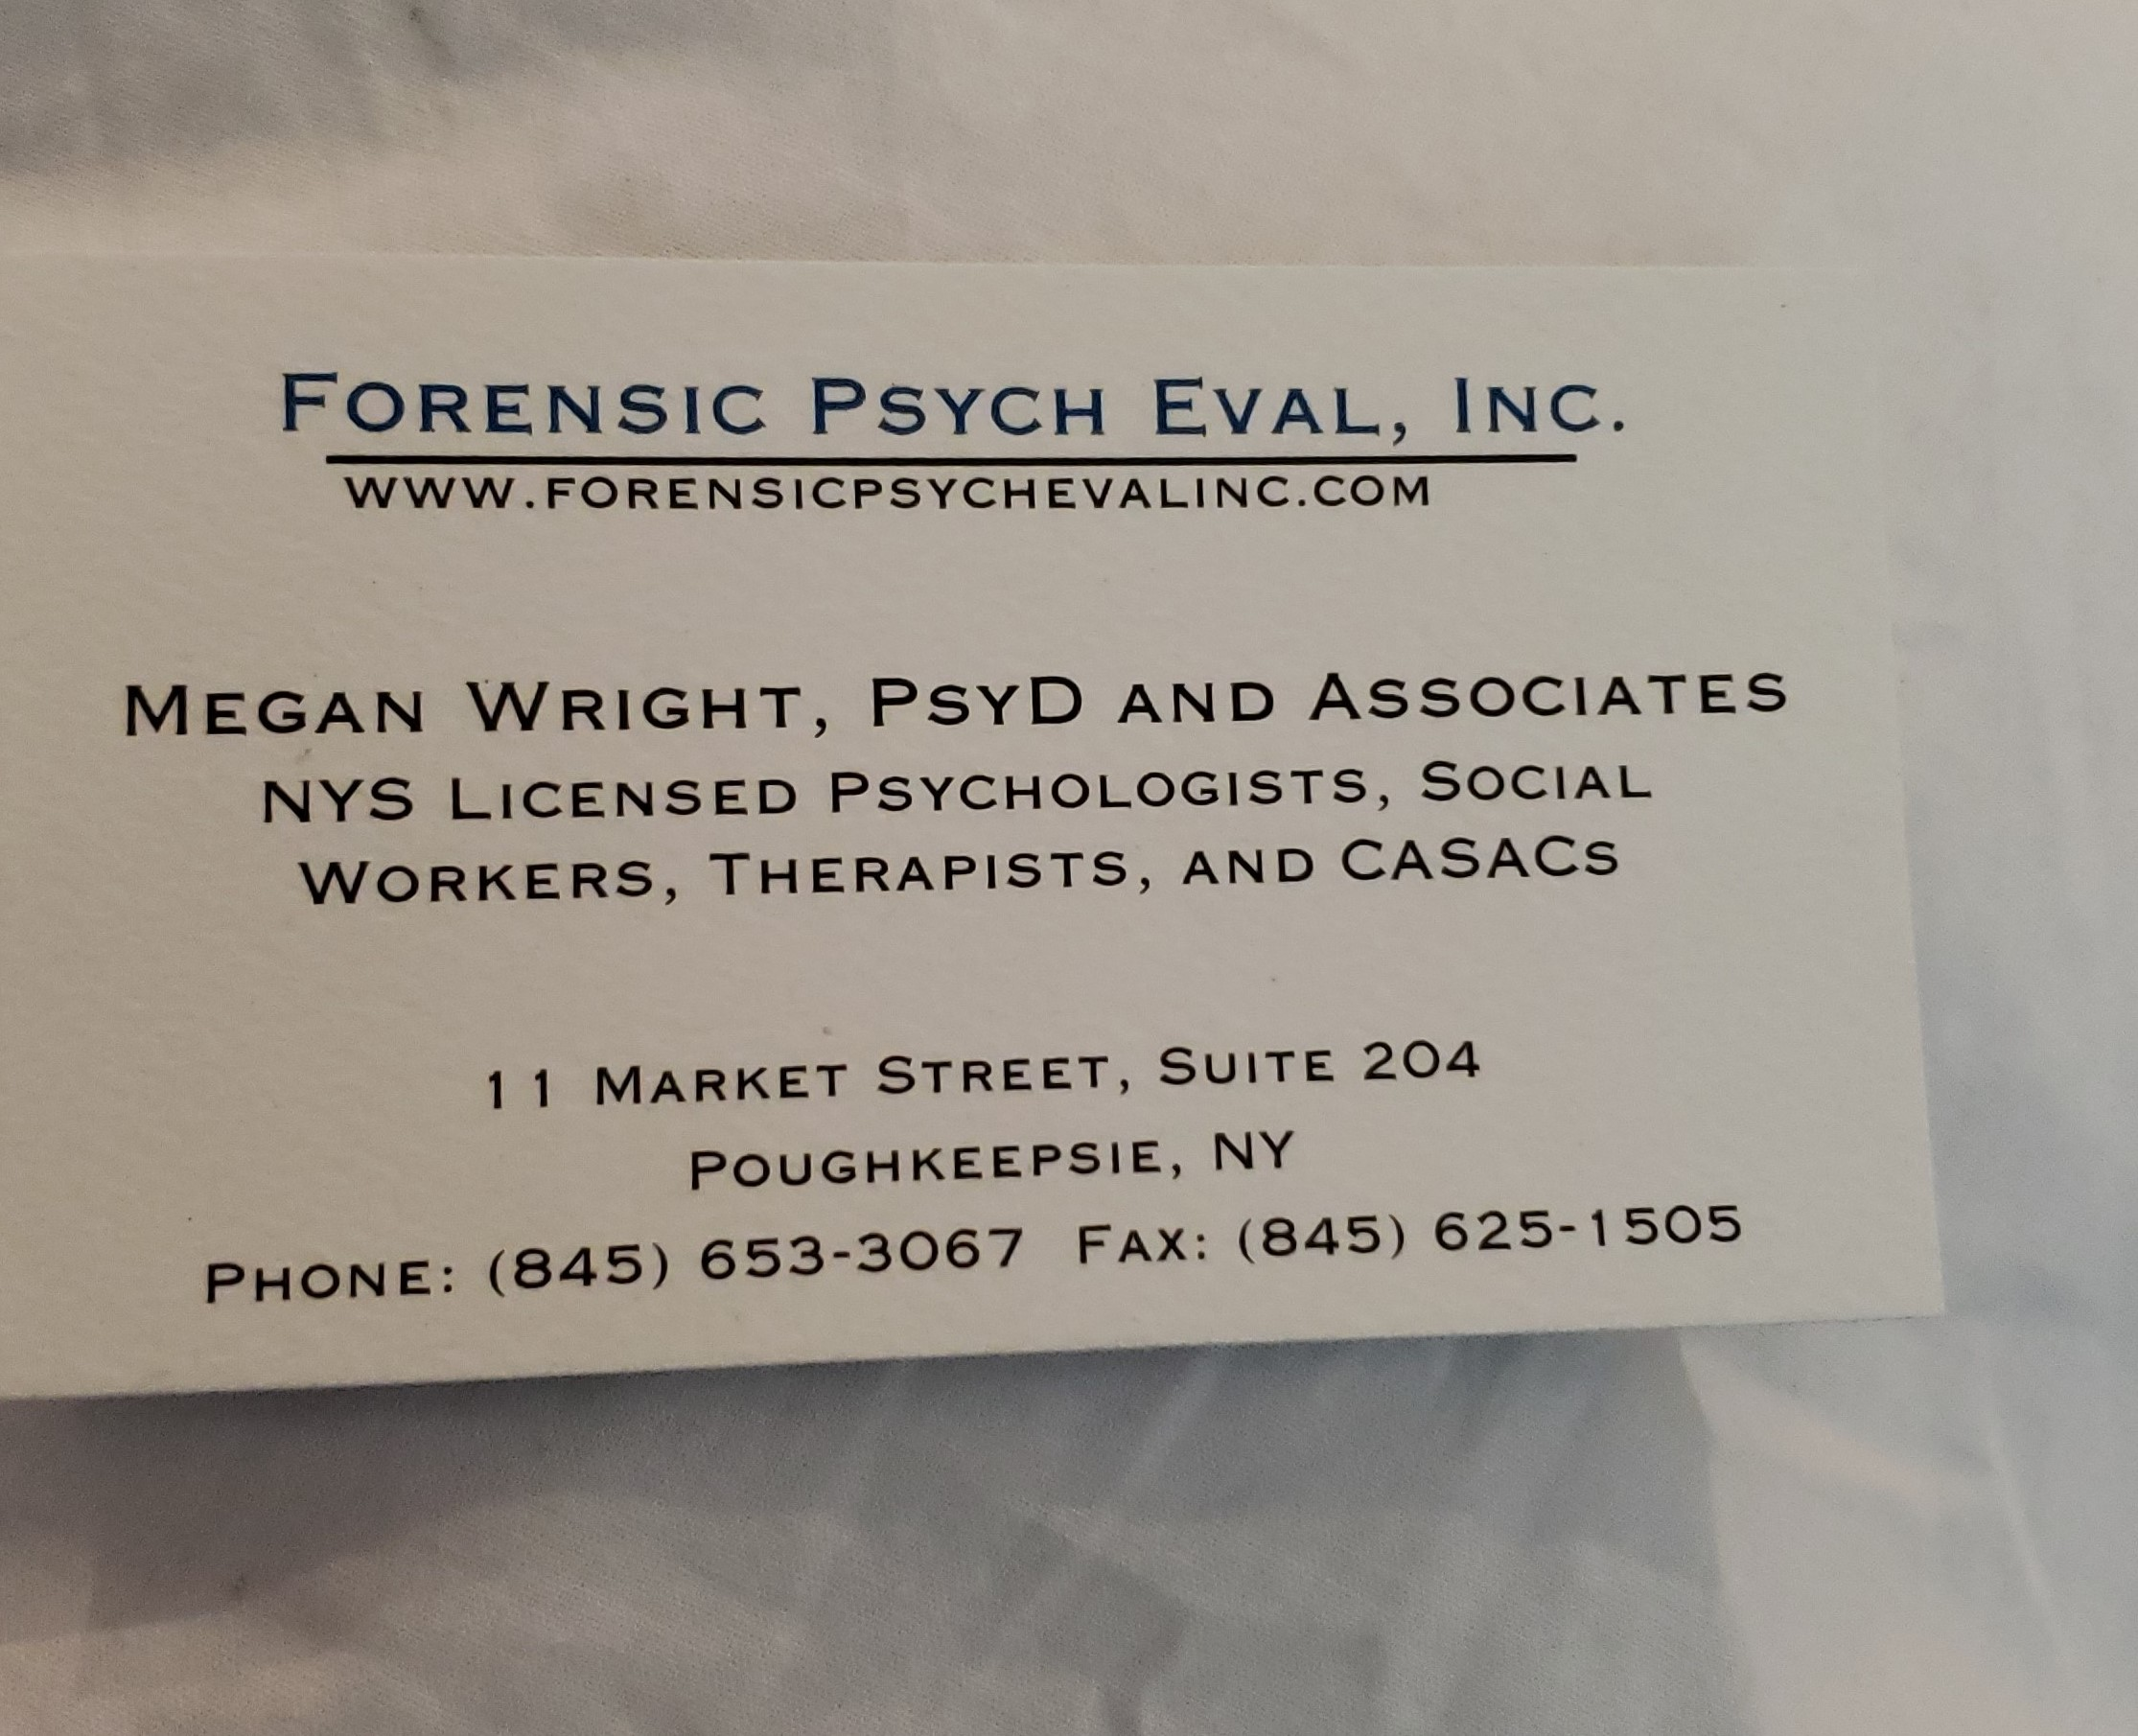 Forensic Psych Eval Inc.